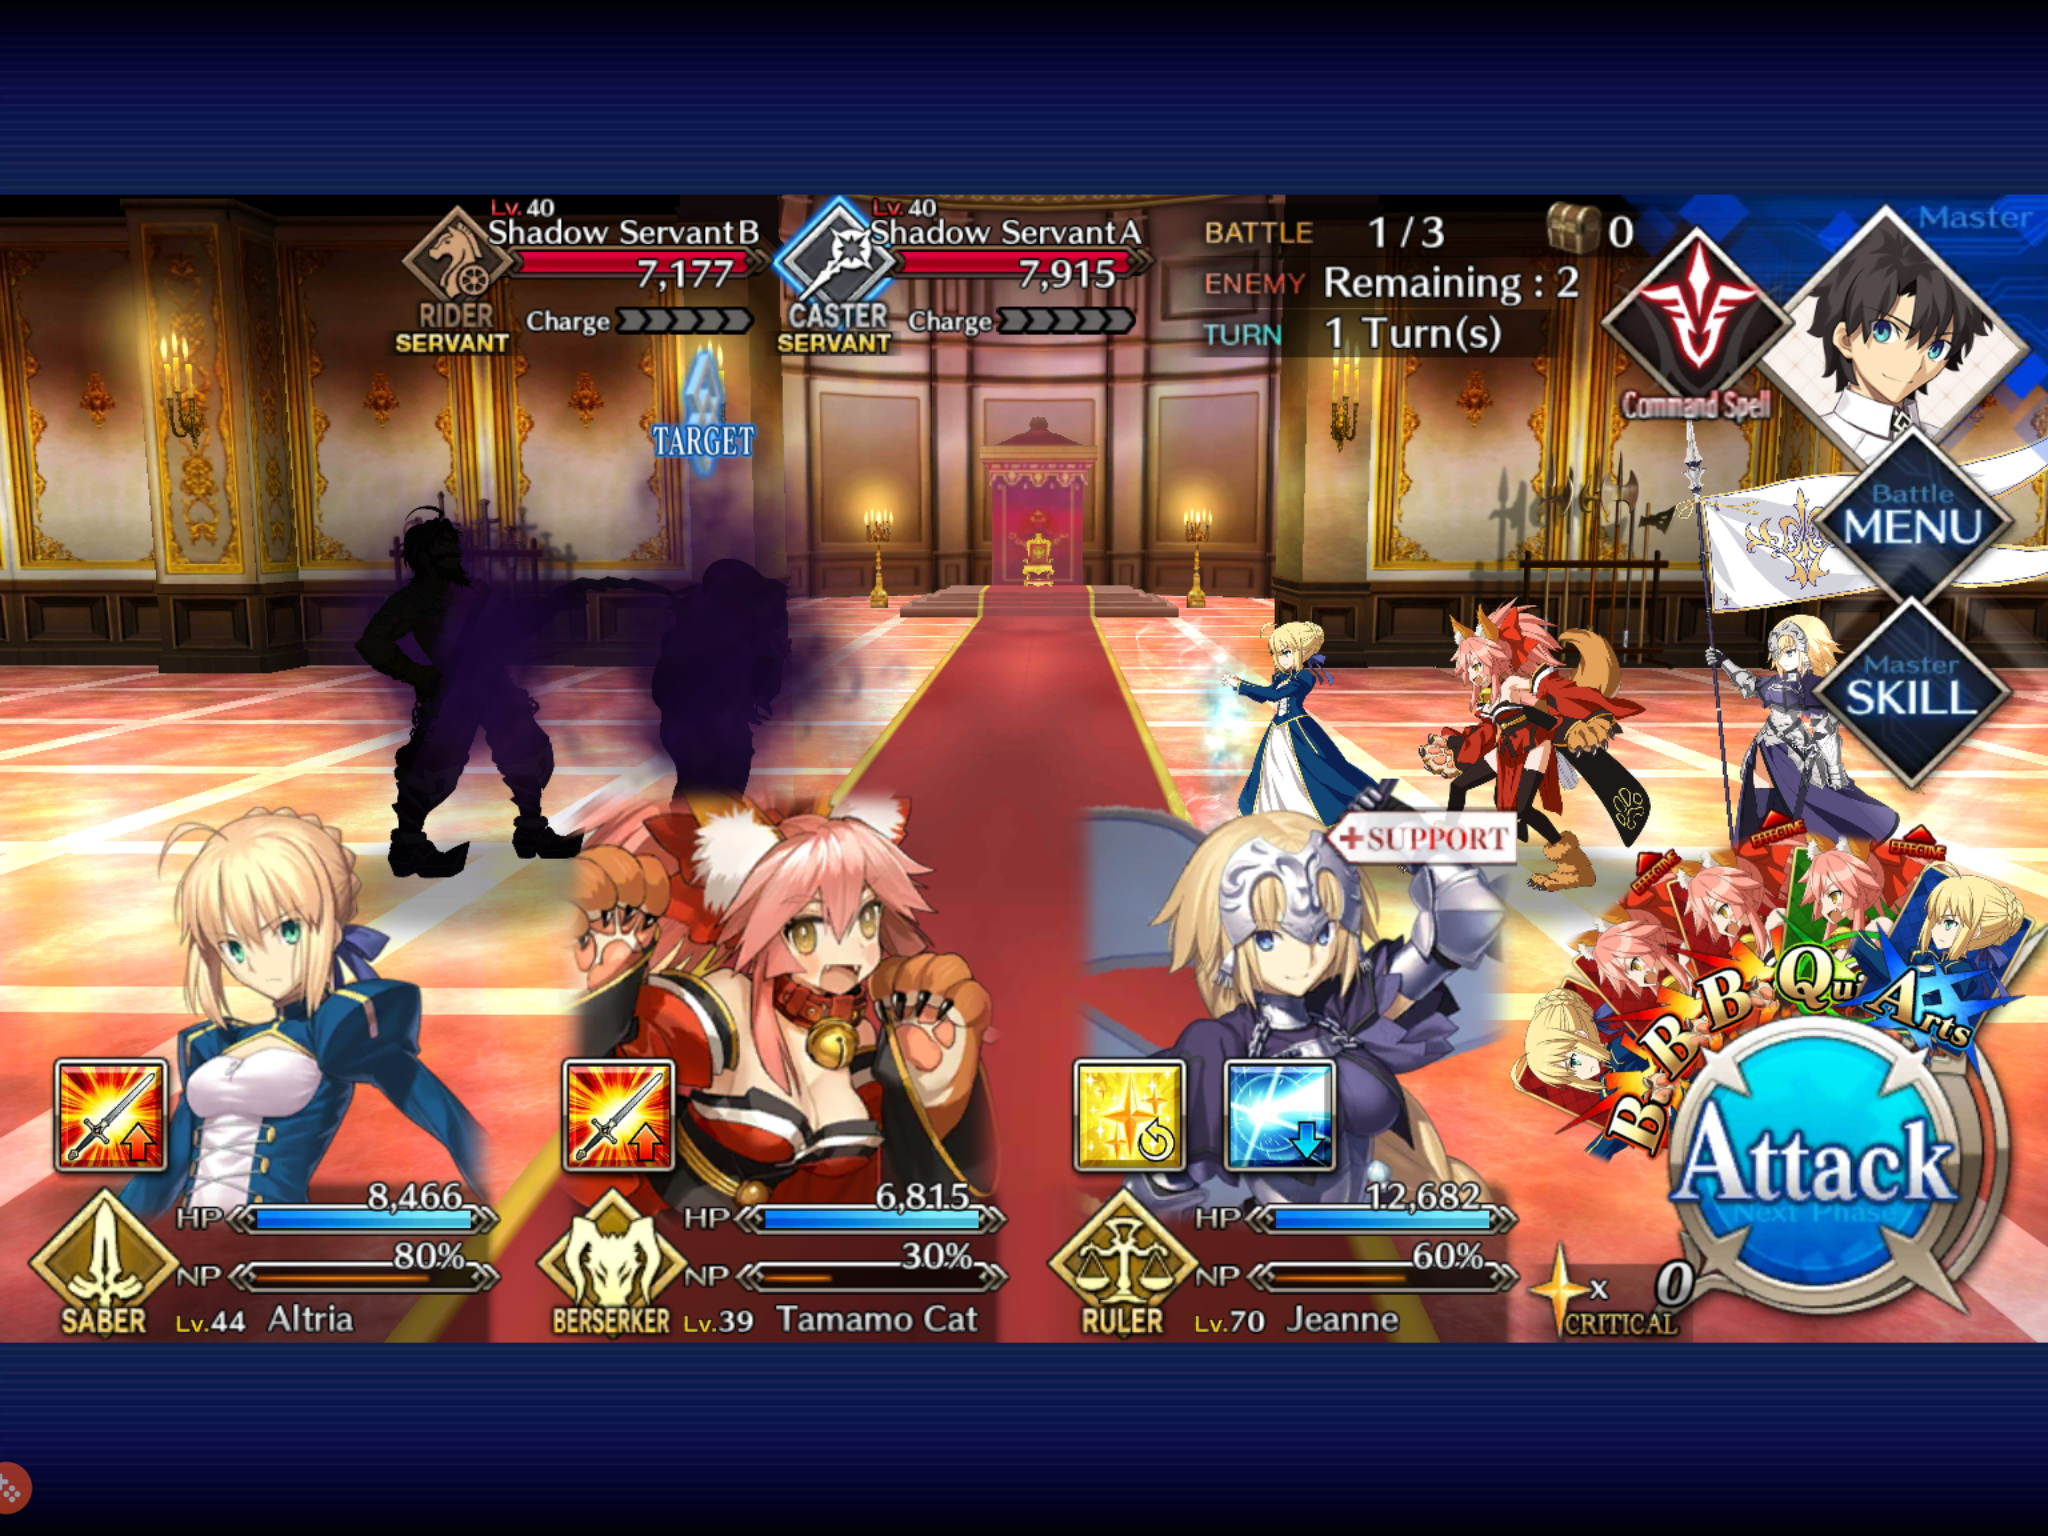 Fate/Grand Order USA Game Review (Updated!) - AstroNerdBoy's